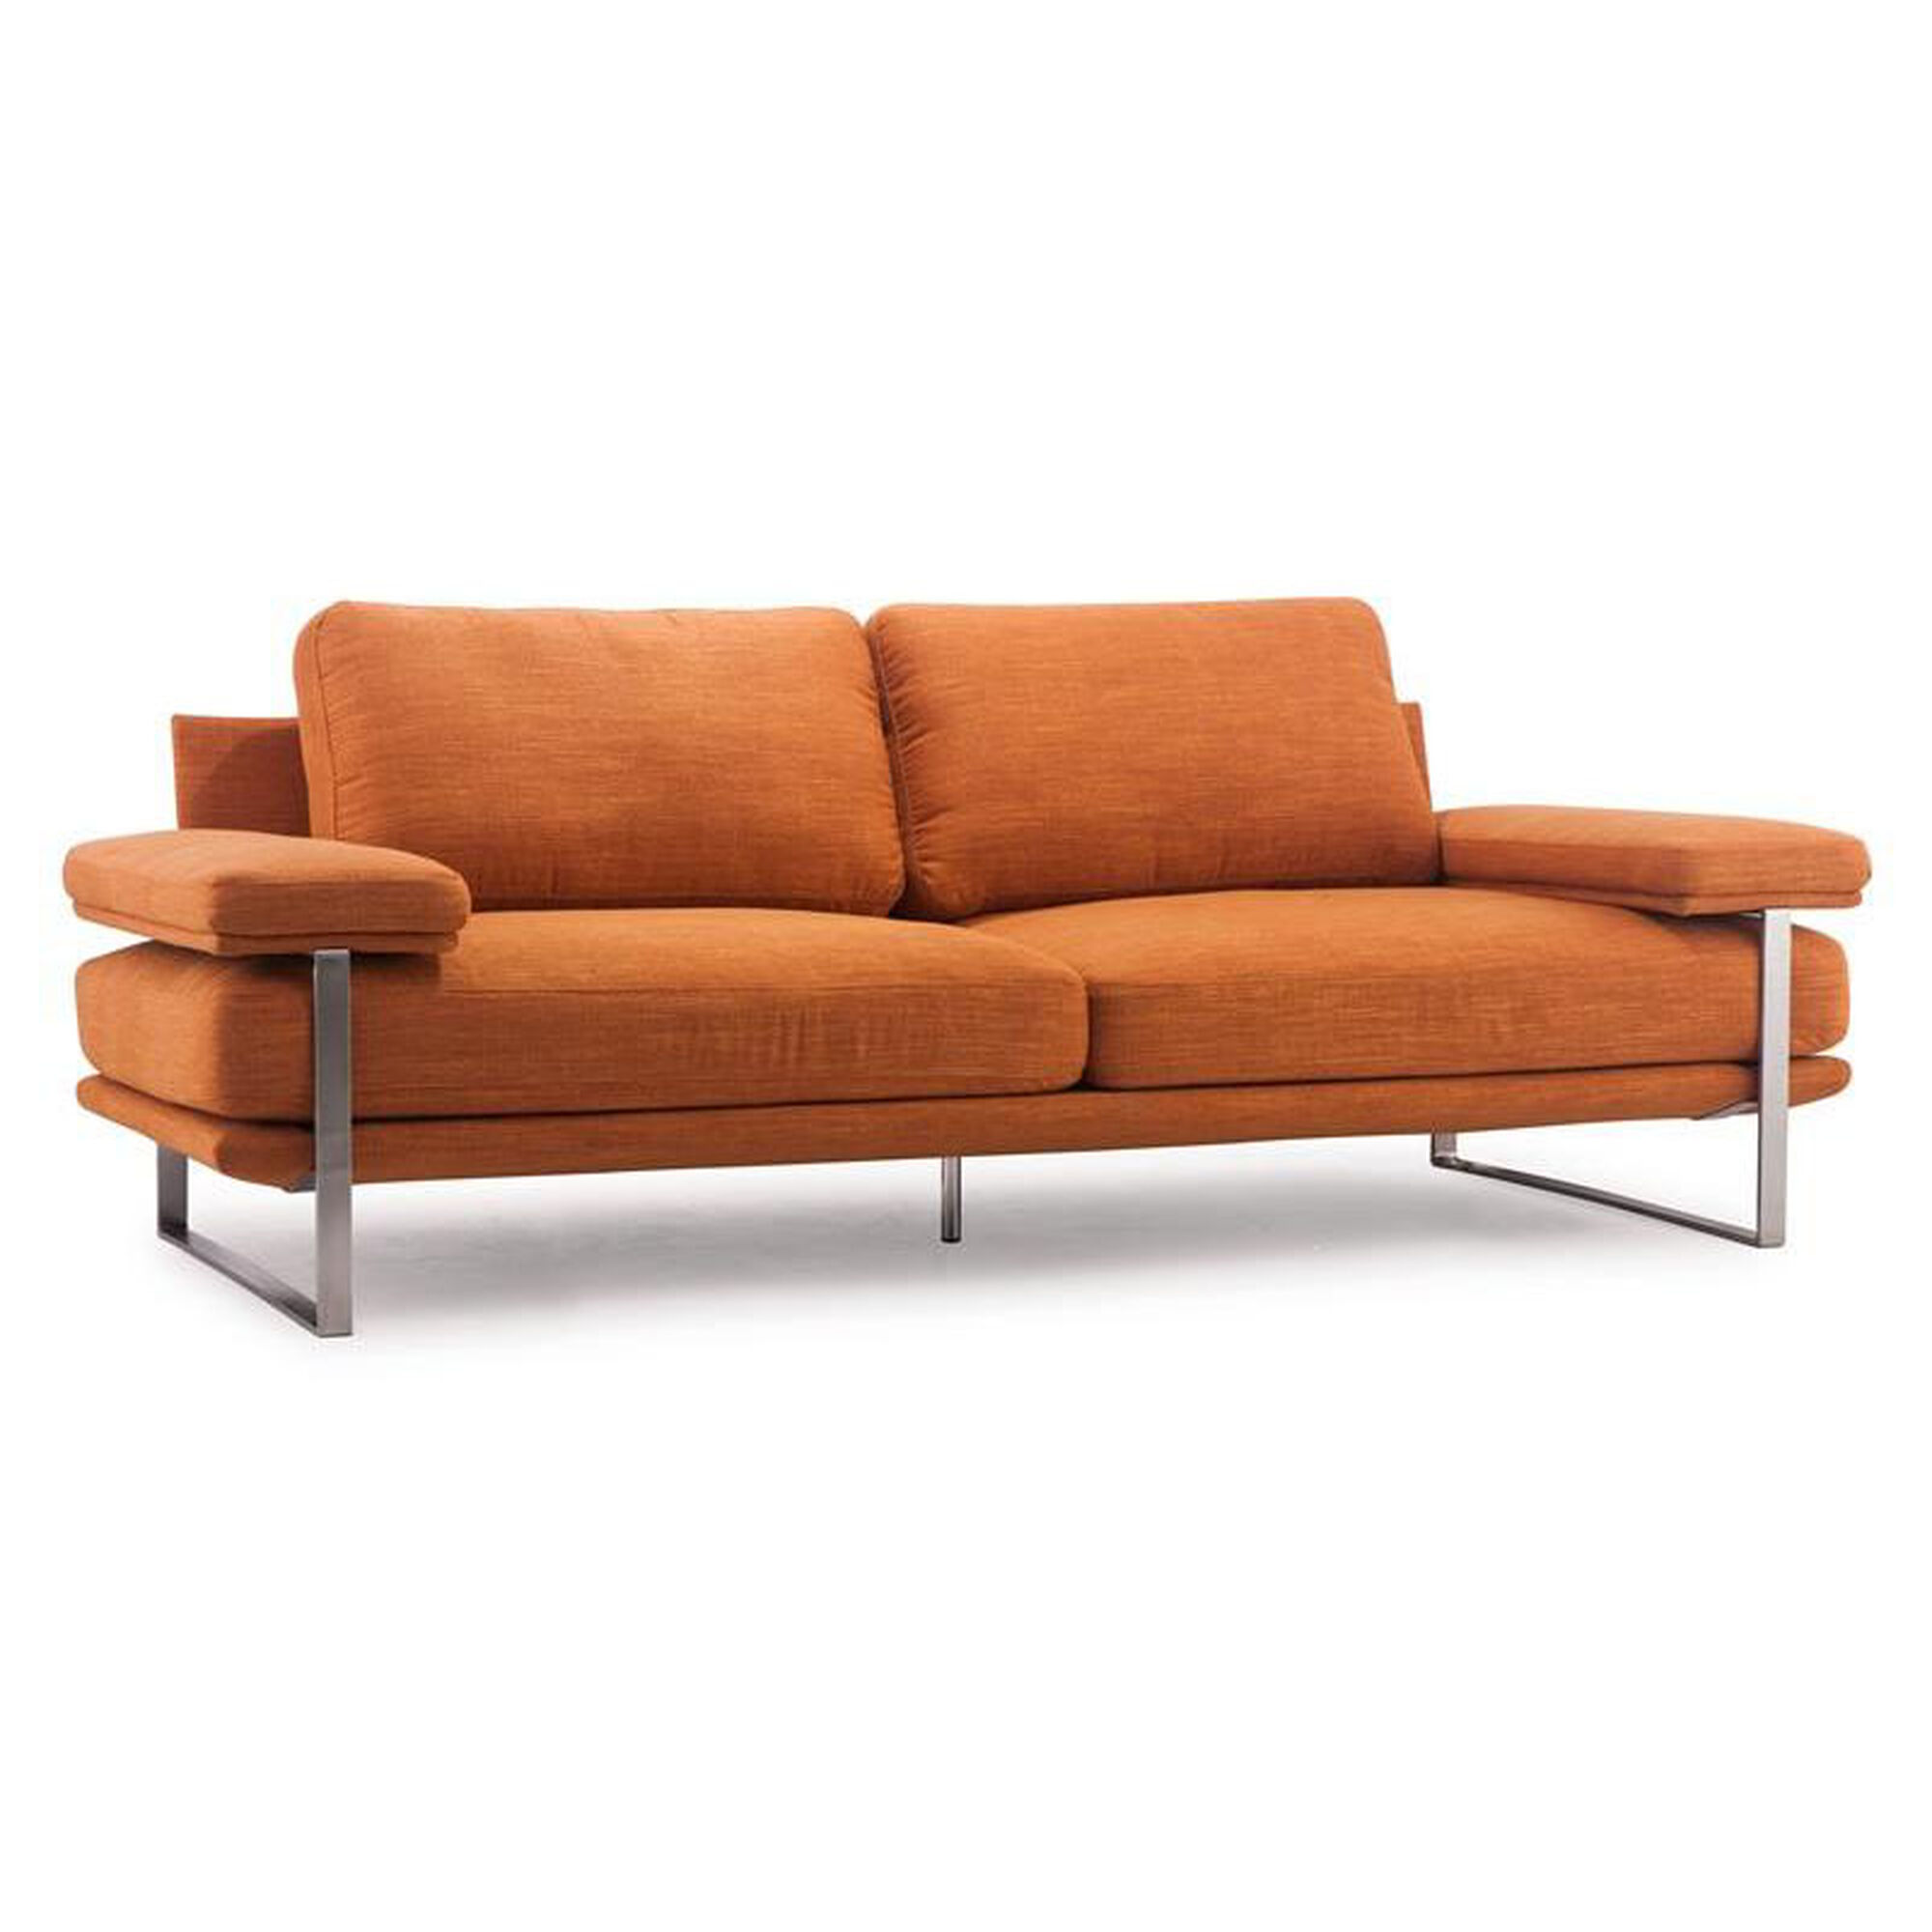 Zuo modern jonkoping sofa in sunkist orange 900625 for Furniture 4 less